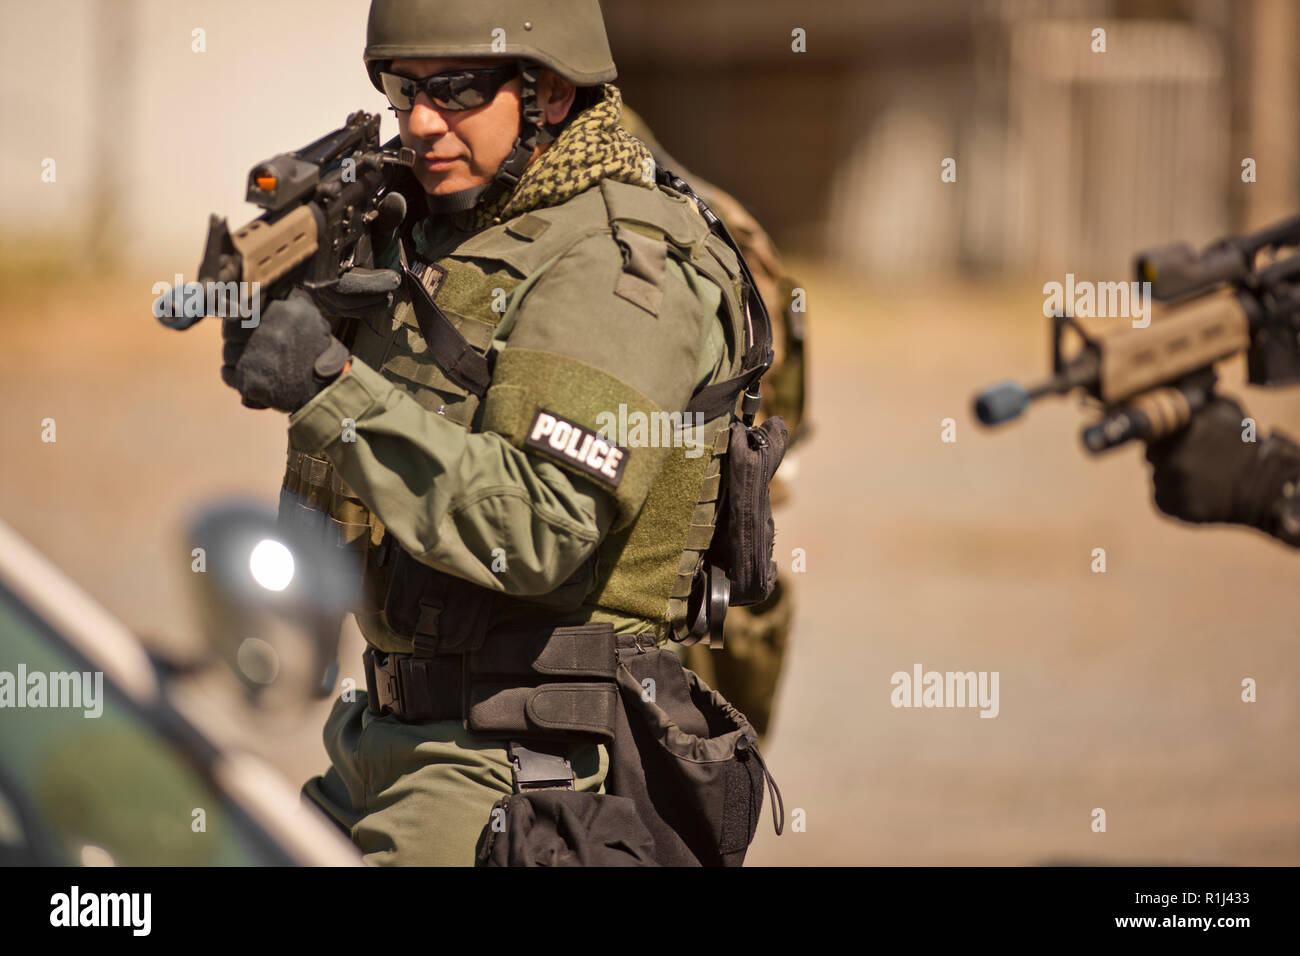 Male police officer aiming a gun toward a target during an exercise at a training facility. - Stock Image